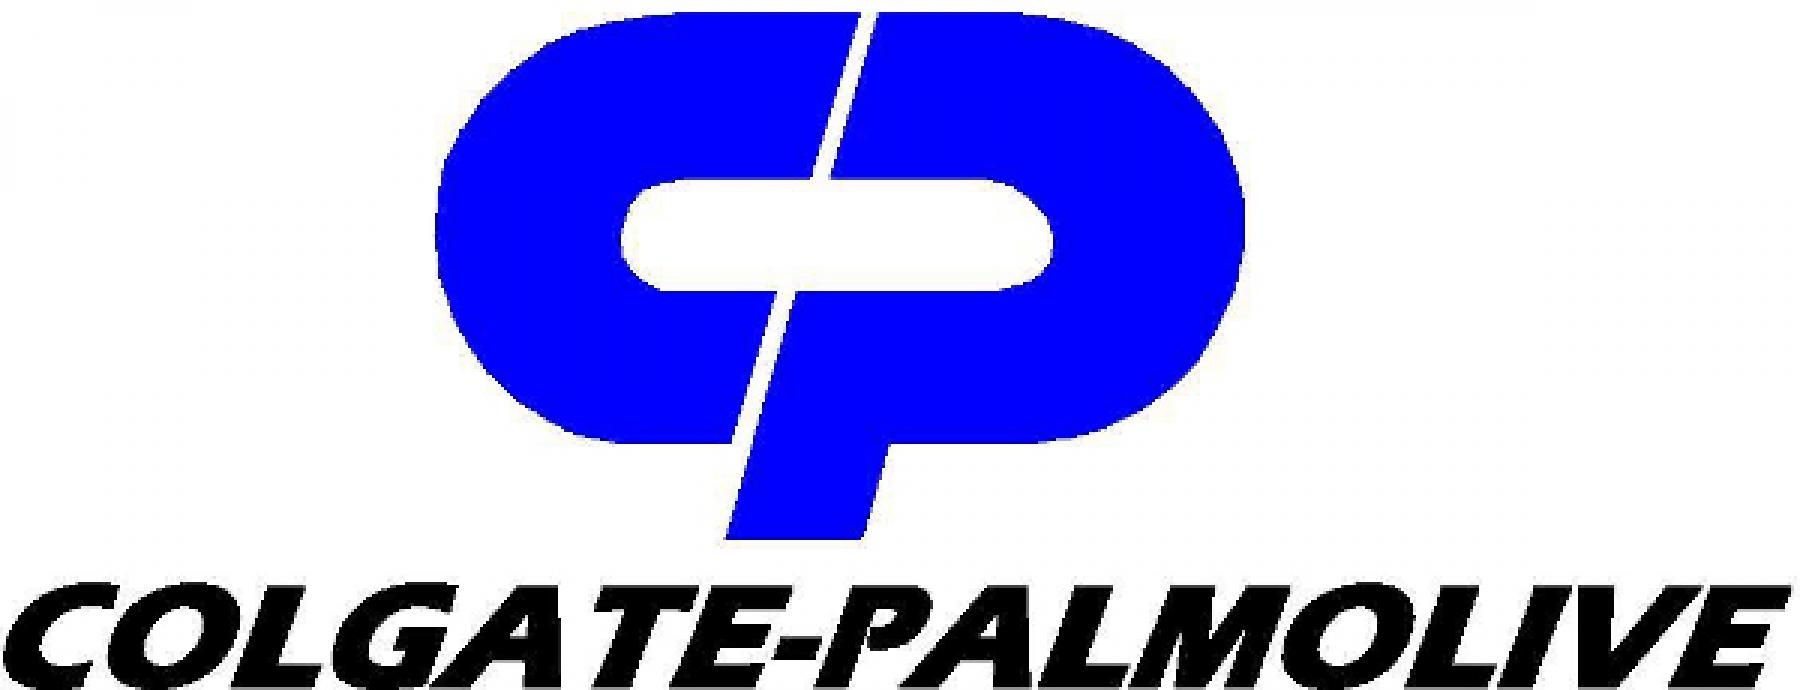 colgate palmolive segmentation strategy Product innovation based on scientific study - as part of its ' winning on the ground ' strategy, colgate-palmolive aims to combat the threat from private label at a time when consumers are trading down through a greater focus on product development close to consumer needs.